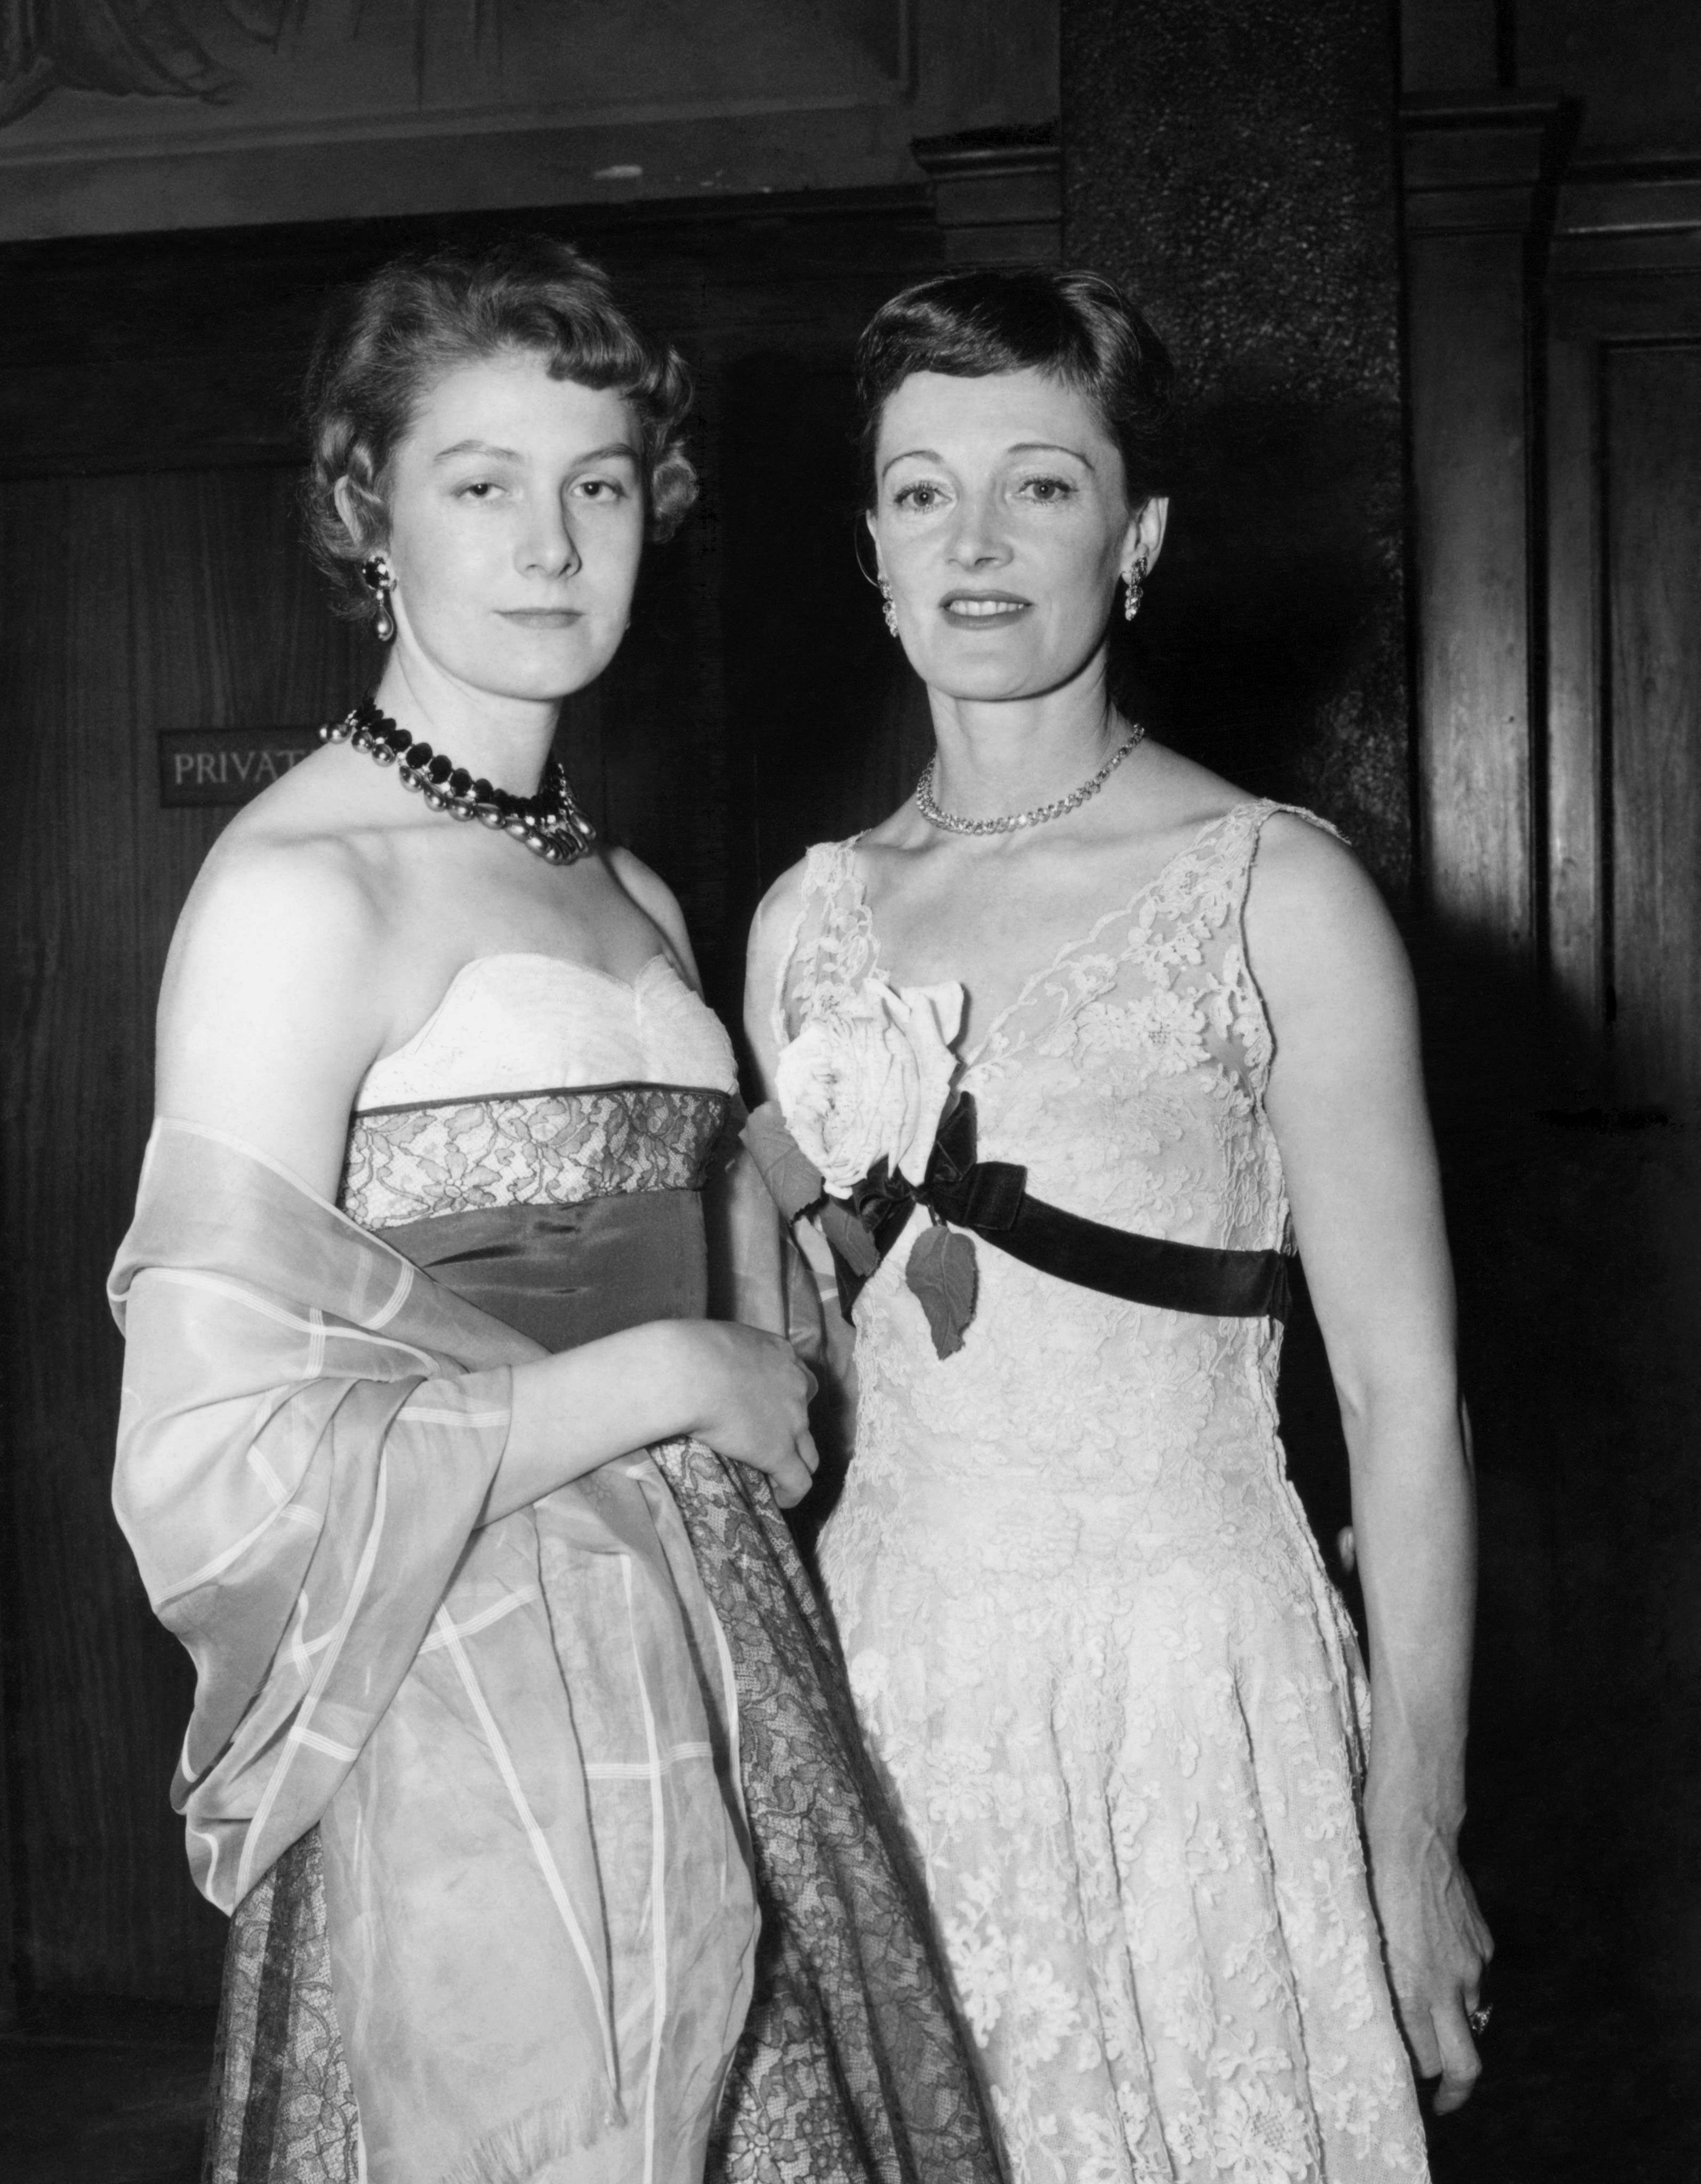 Rachel Kempson, actress wife of actor Michael Redgrave, right, and their daughter Vanessa Redgrave, at the premiere of the film 'The Night My Number Came Up' - in which Michael stars - at the Leicester Square Theatre, London. 24/03/1955